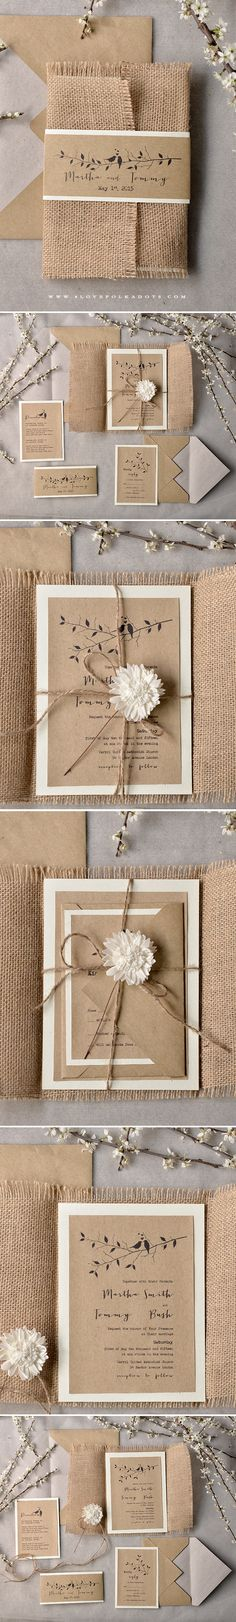 Wedding Invitations with burlap wrapping & flower #ecofriendly #rustic #eco #weddingideas #summerwedding #garden